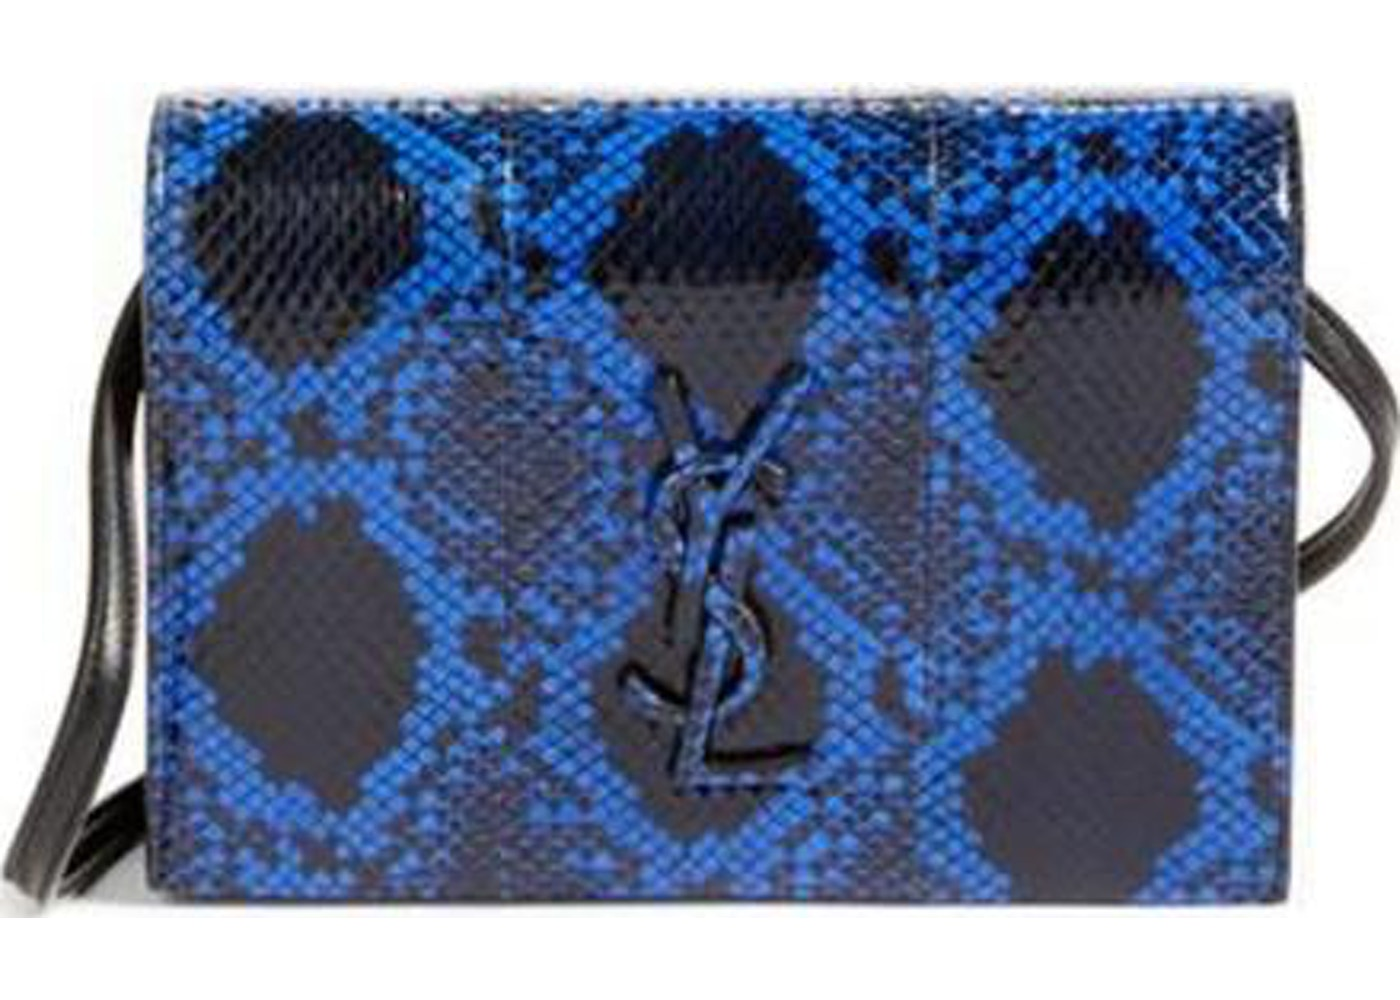 84c935986cf4 Saint Laurent Toy Kate Shoulder Bag Snakeskin Ruthenium-tone Mini  Blue Black. Snakeskin Ruthenium-tone Mini Blue Black